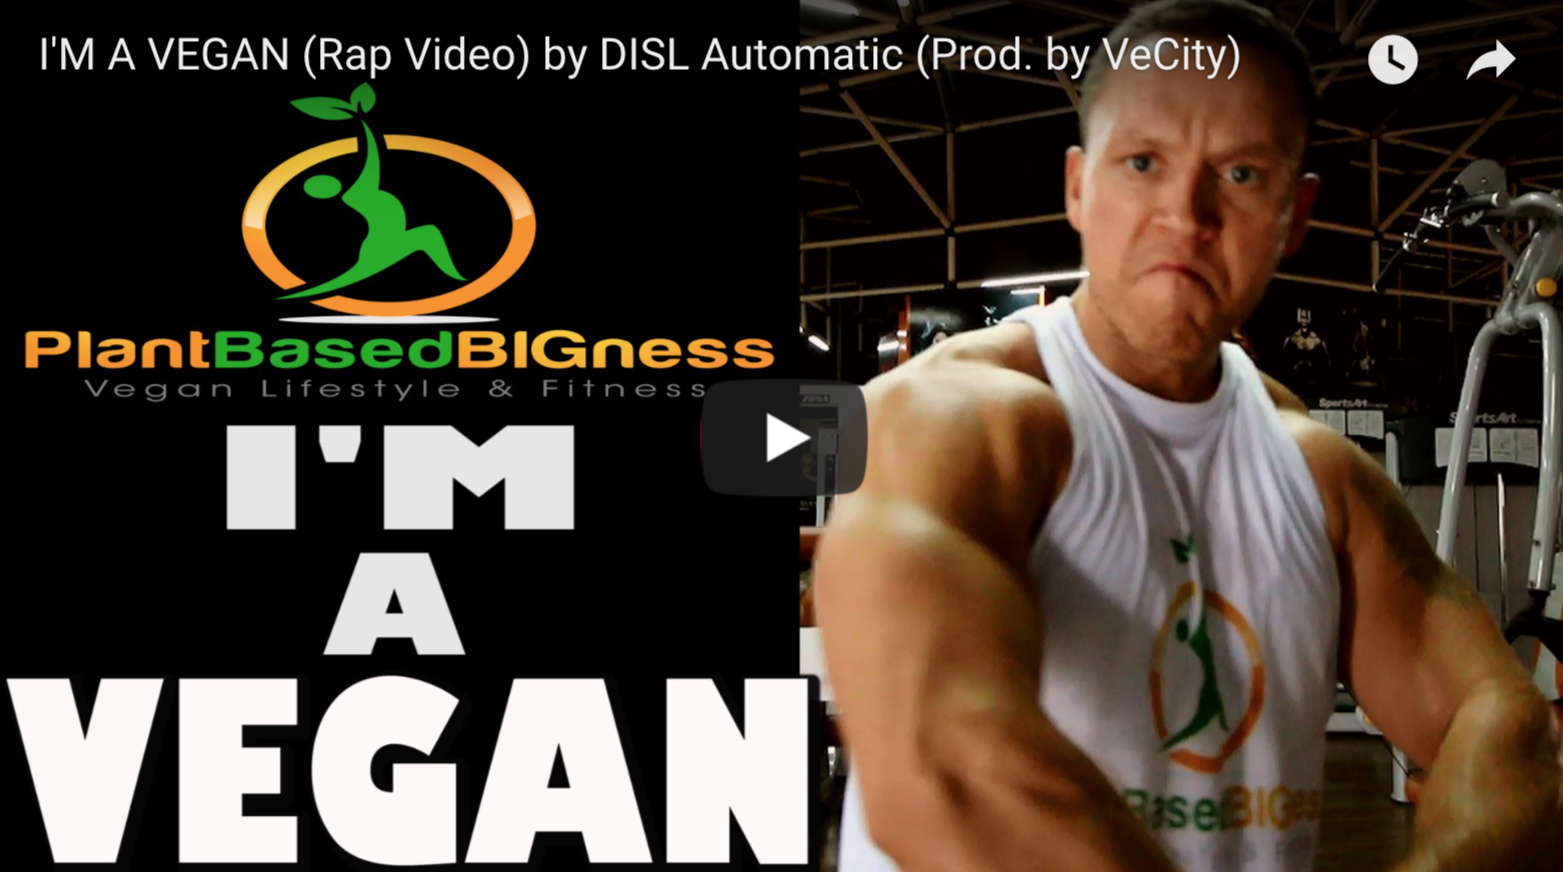 I'M A VEGAN (Rap Video) by DISL Automatic (Prod. by VeCity) | VeganFlix